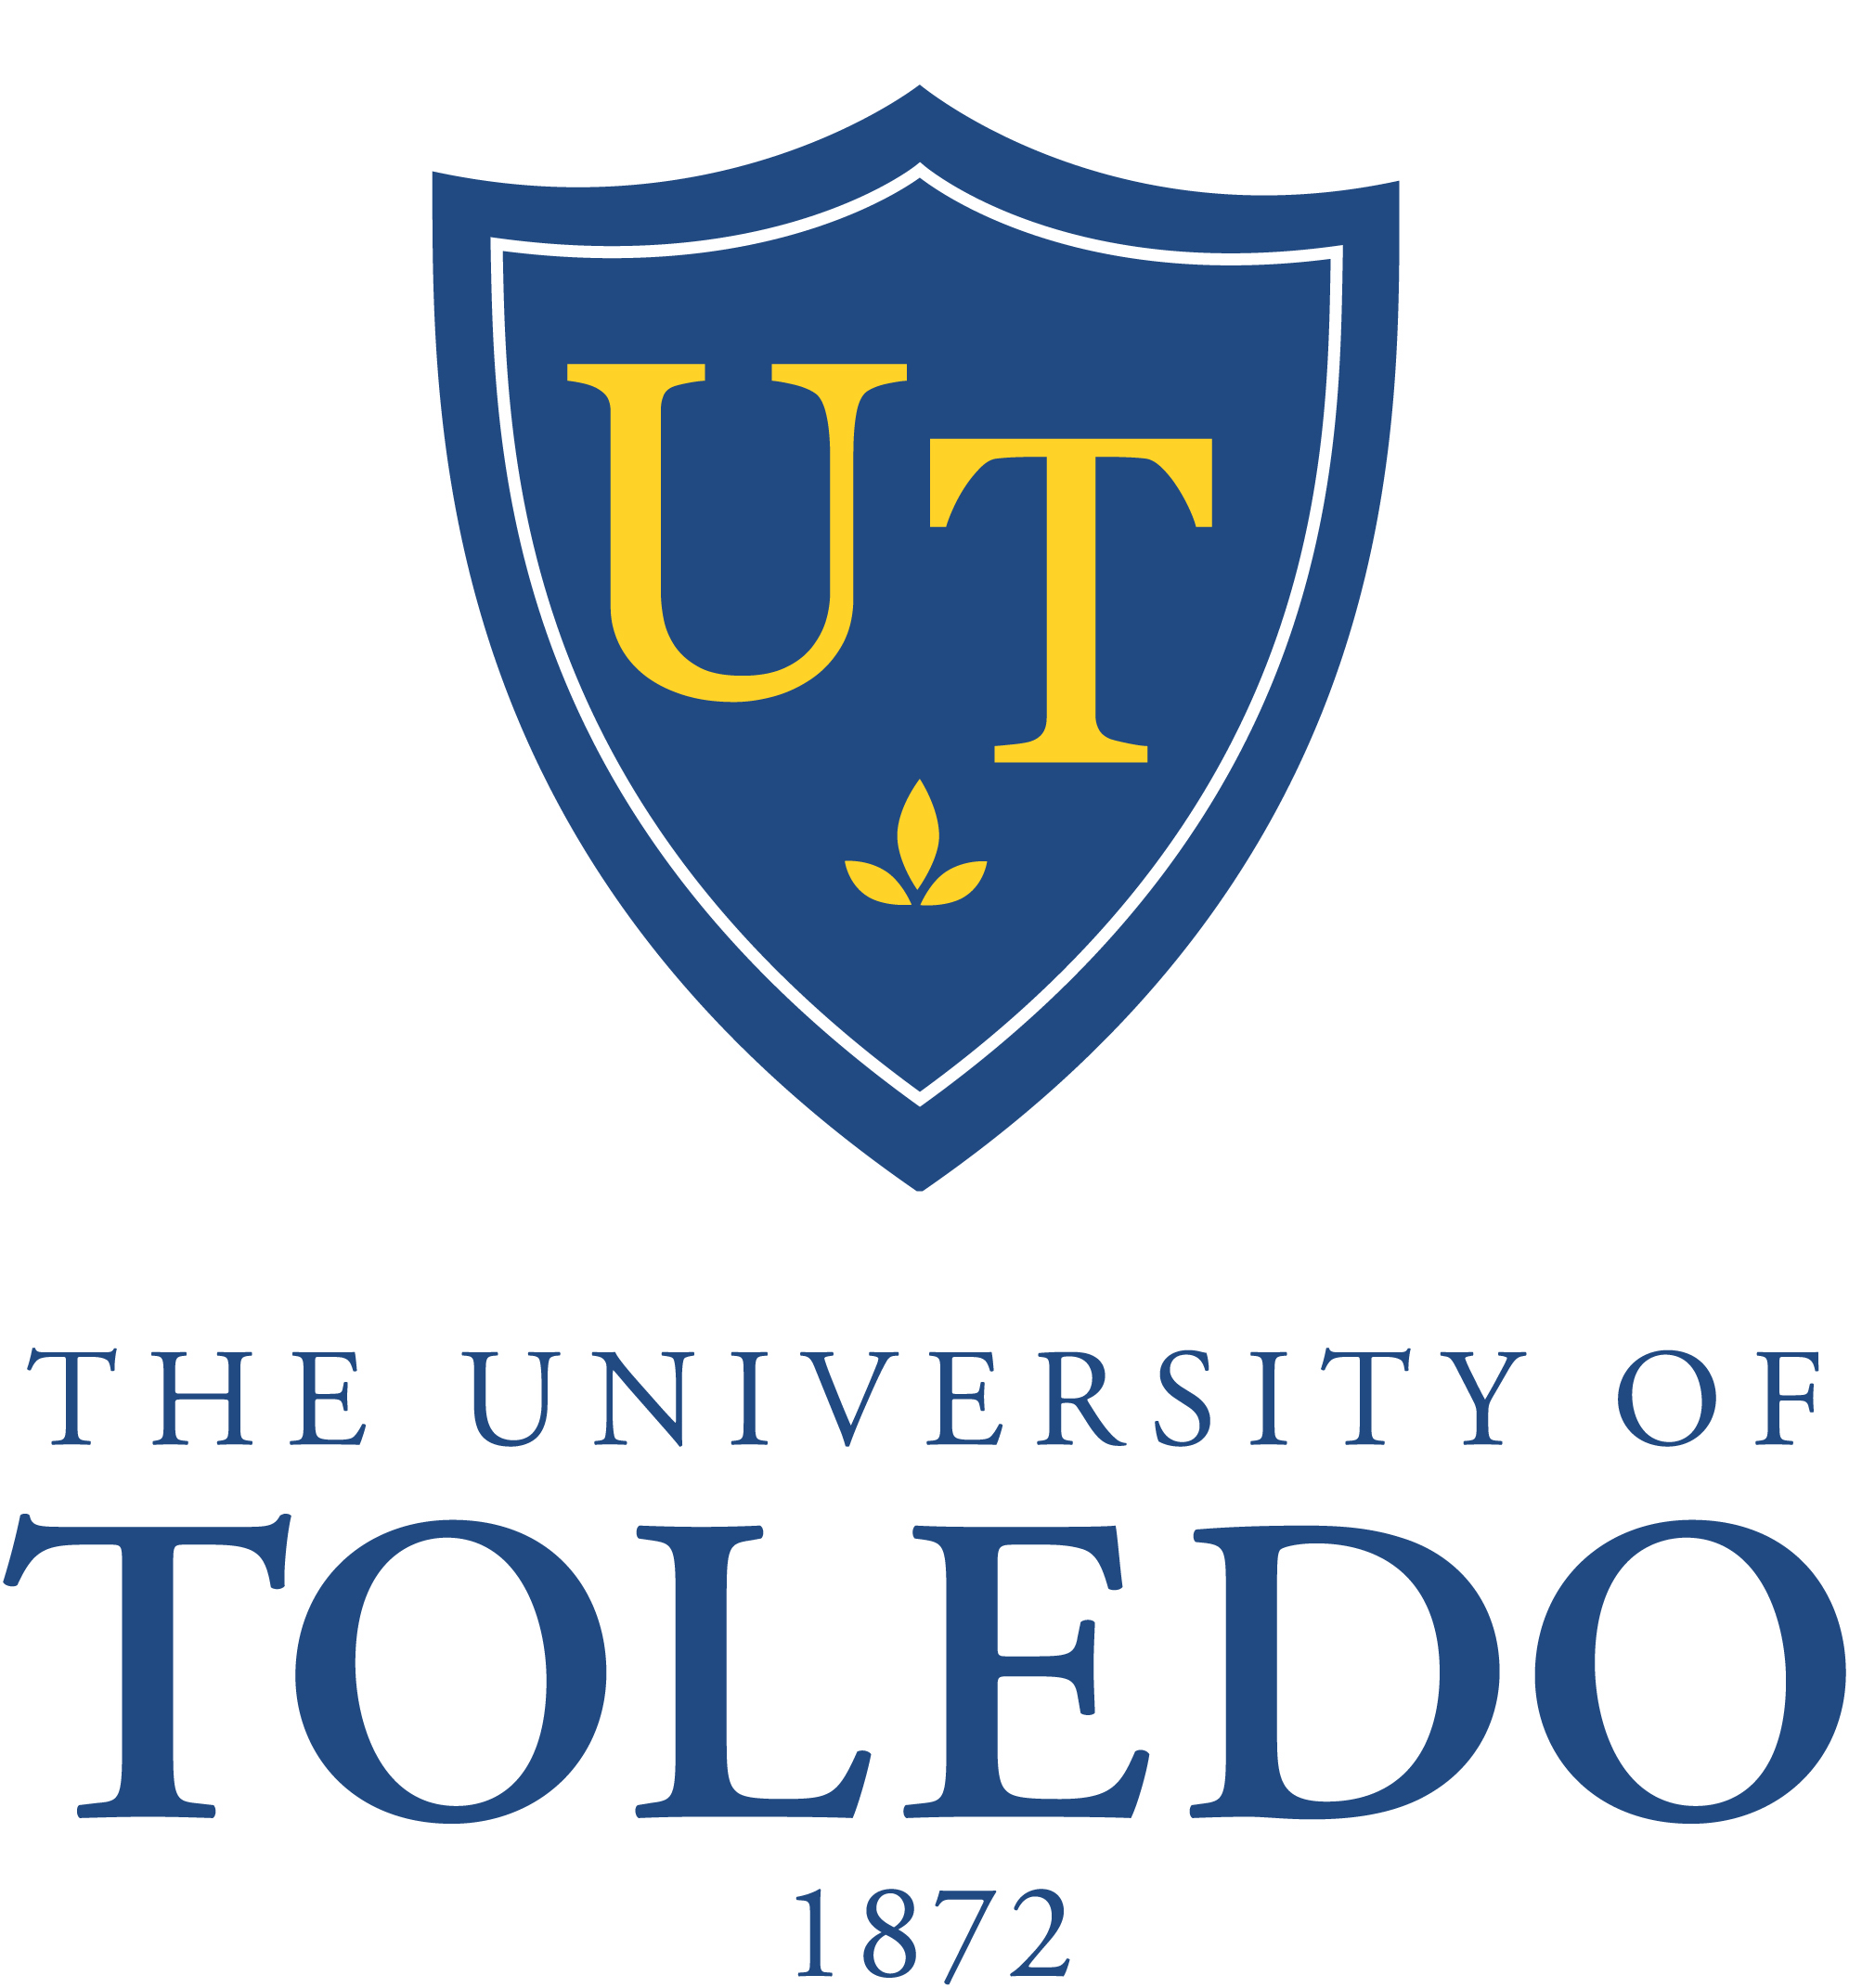 The University of Toledo created the CCSIES (Community College Student Internationalization Experience Survey) to explore the relationship between student involvement in international programs, services, and classroom practices and key student outcomes.